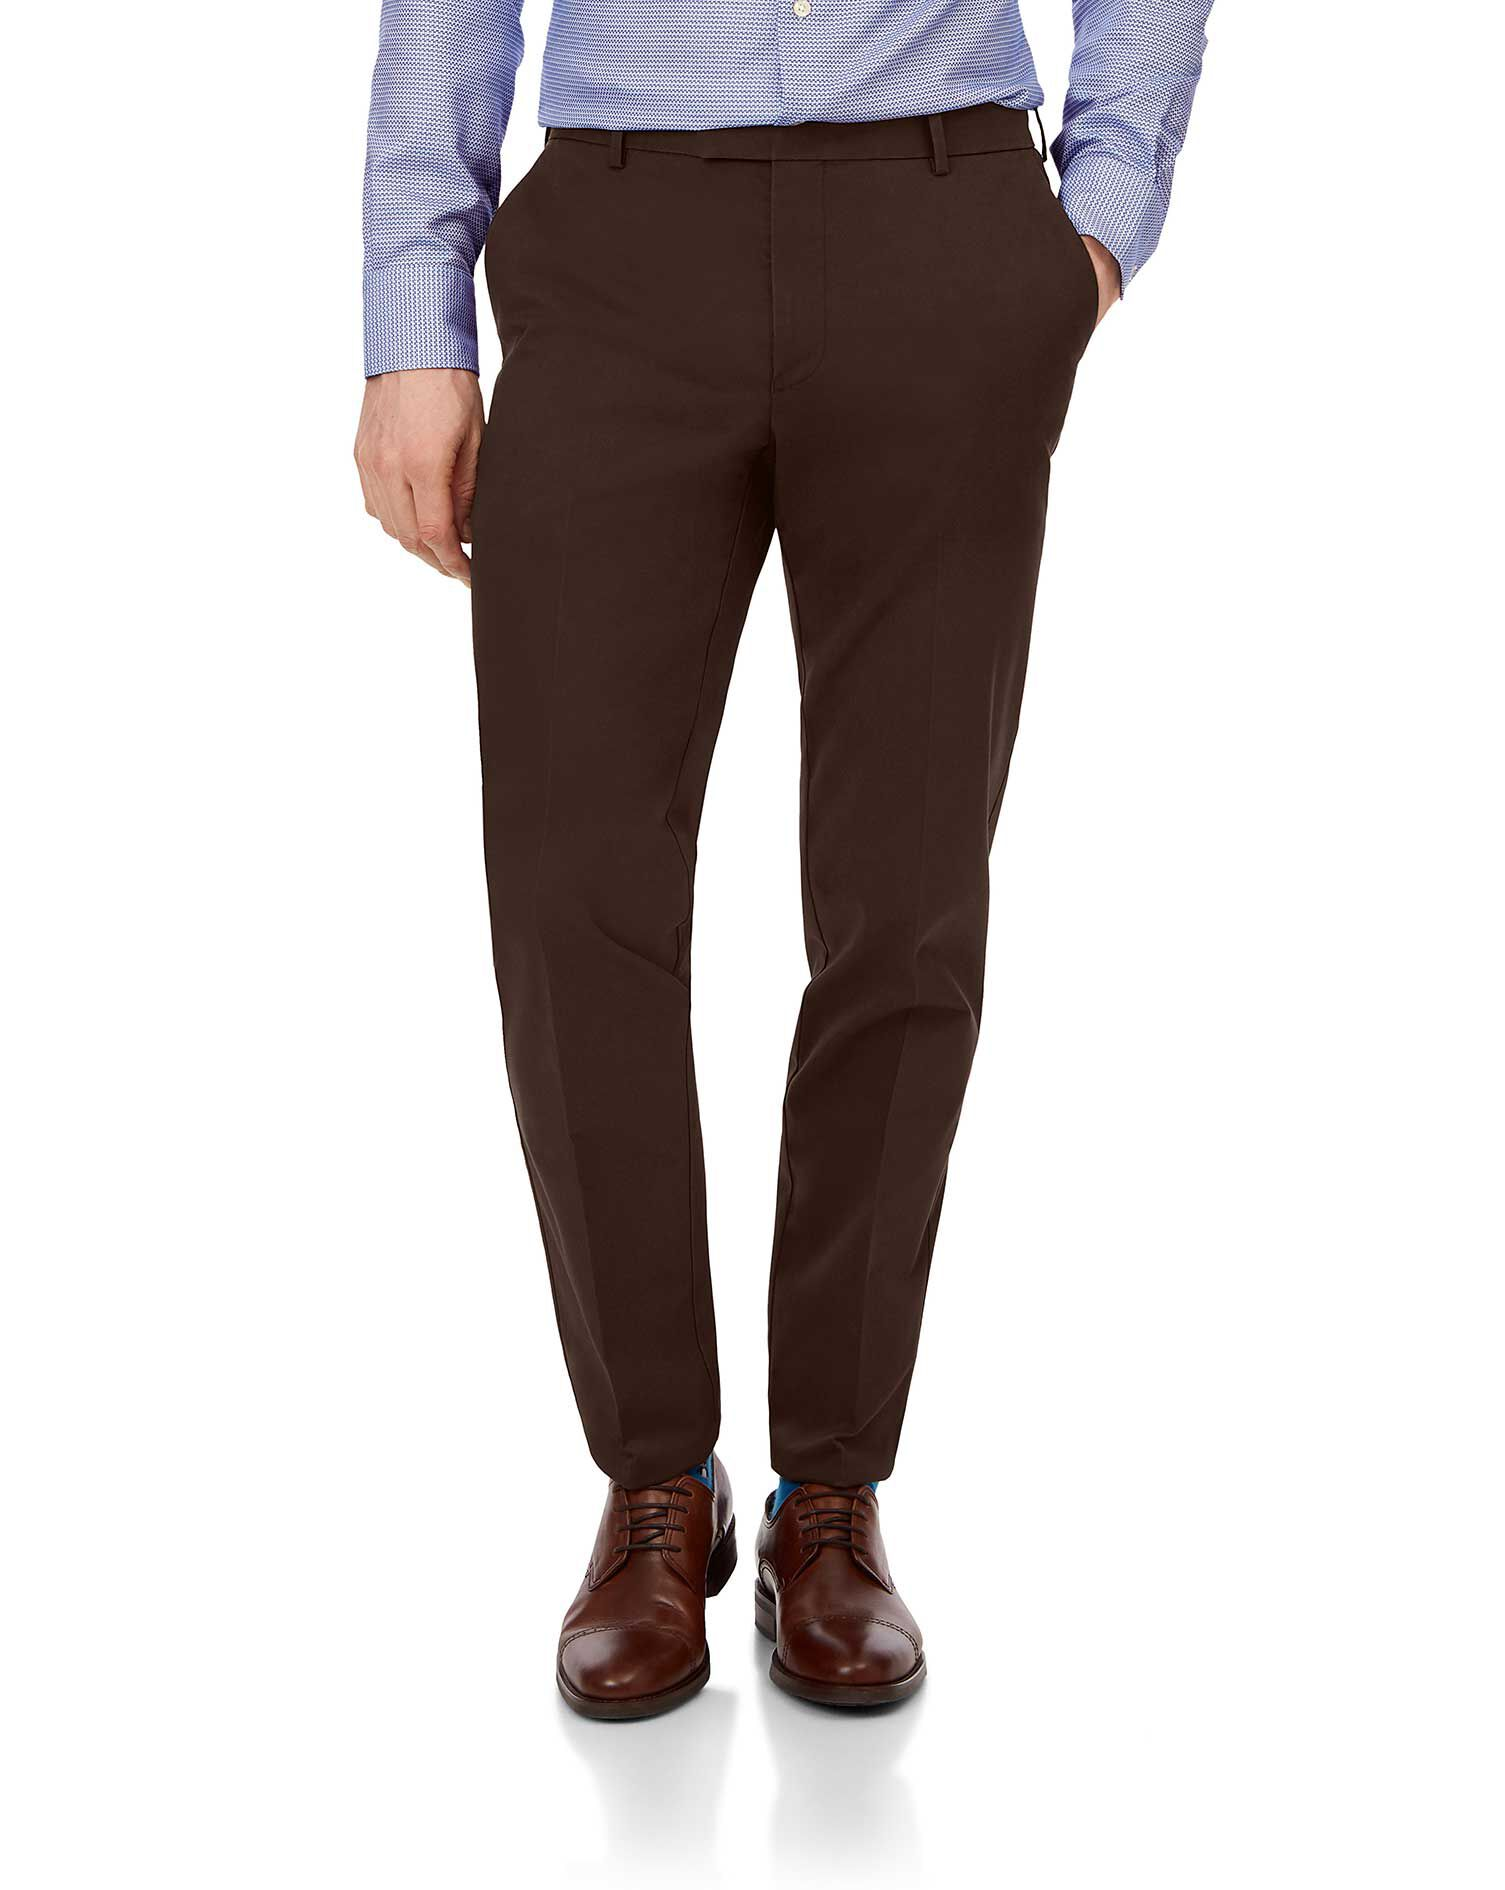 Chestnut flat front non iron chinos